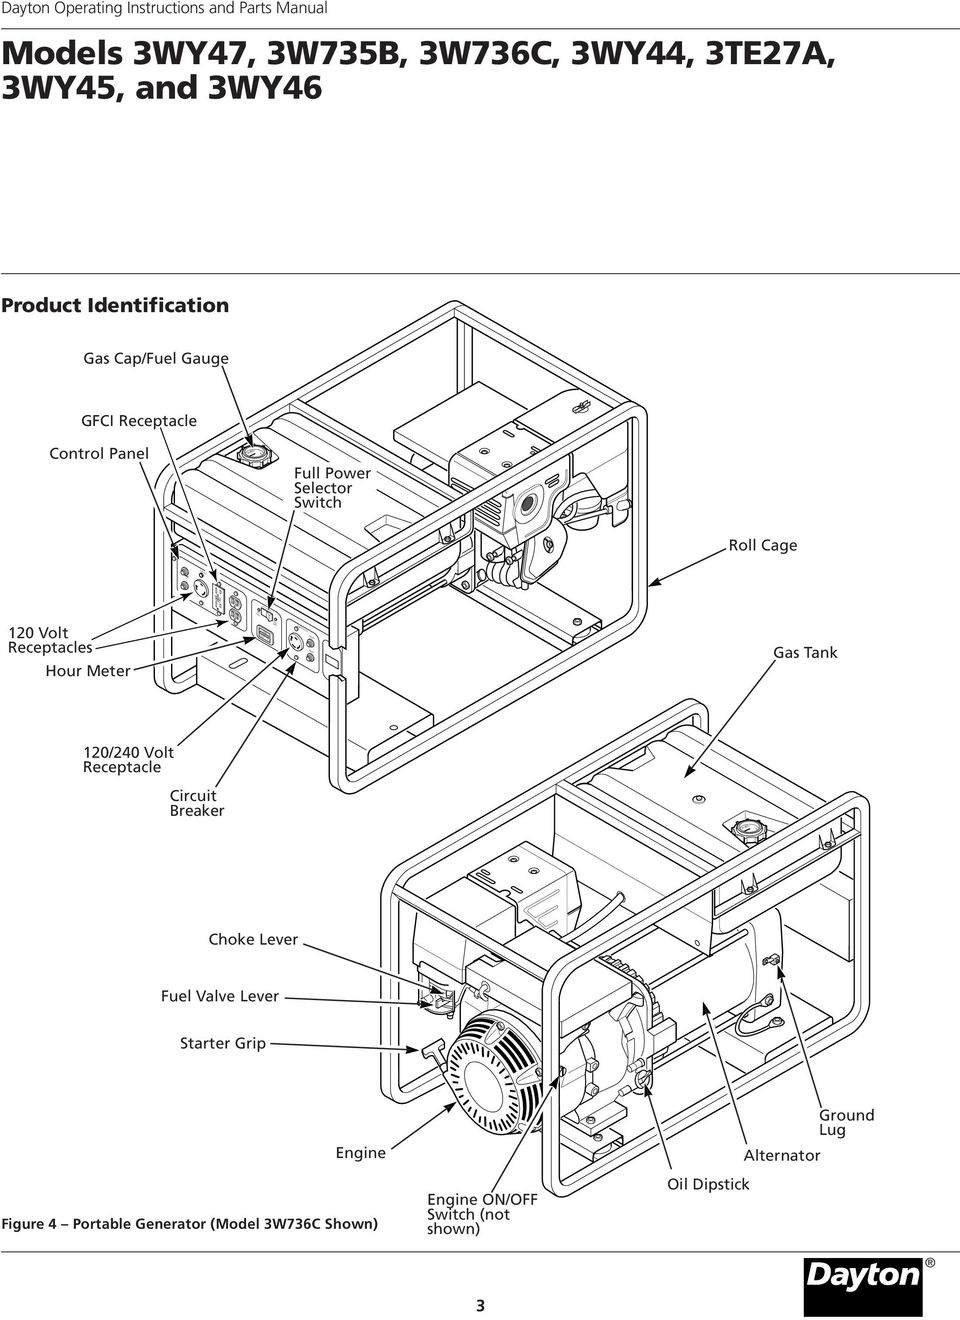 Dayton Exhaust Fan Manual Best Fan Imageforms Co